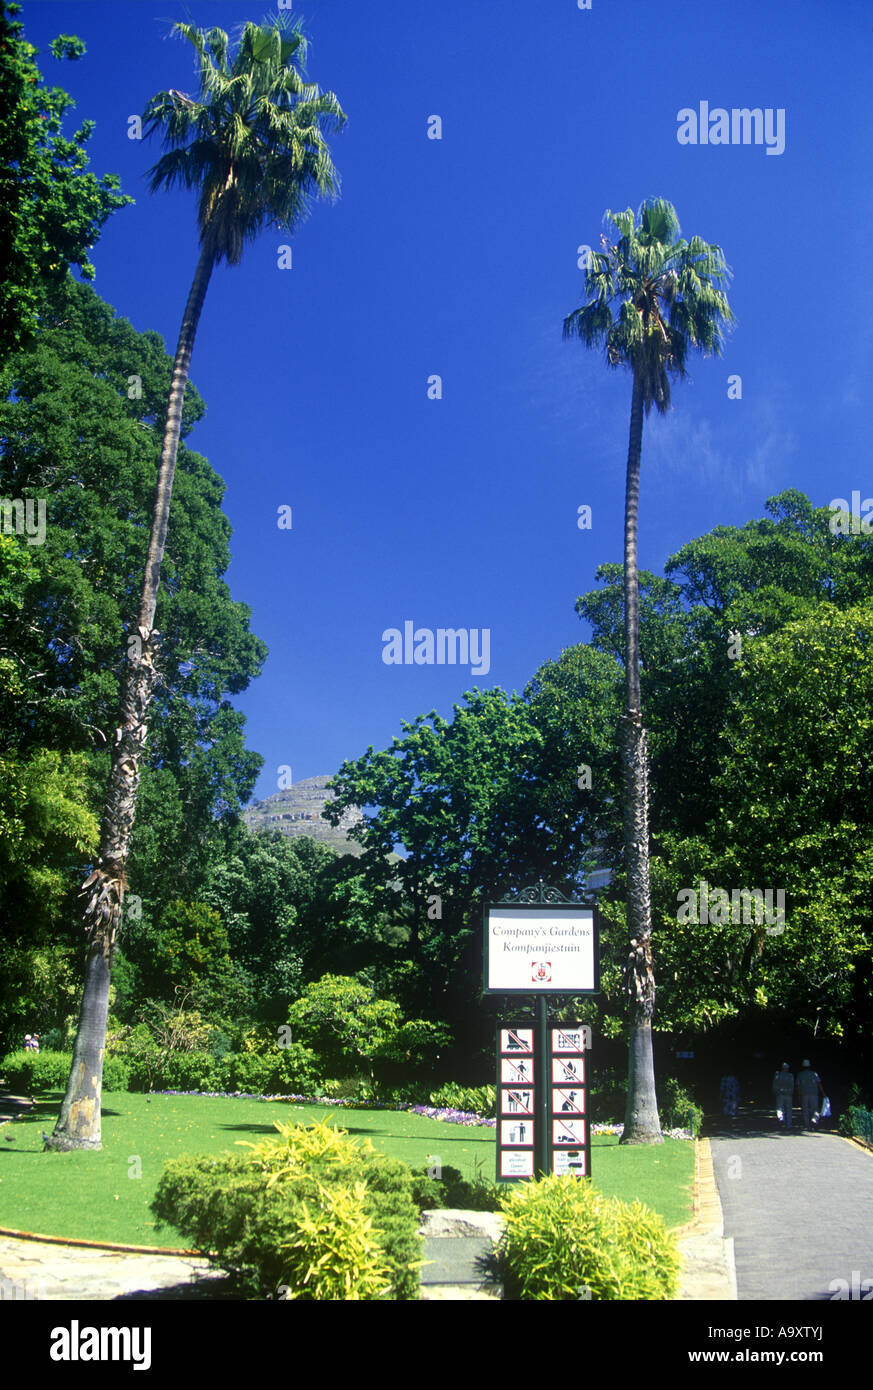 TALL PALM TREES COMPANY GARDEN CAPE TOWN SOUTH AFRICA - Stock Image